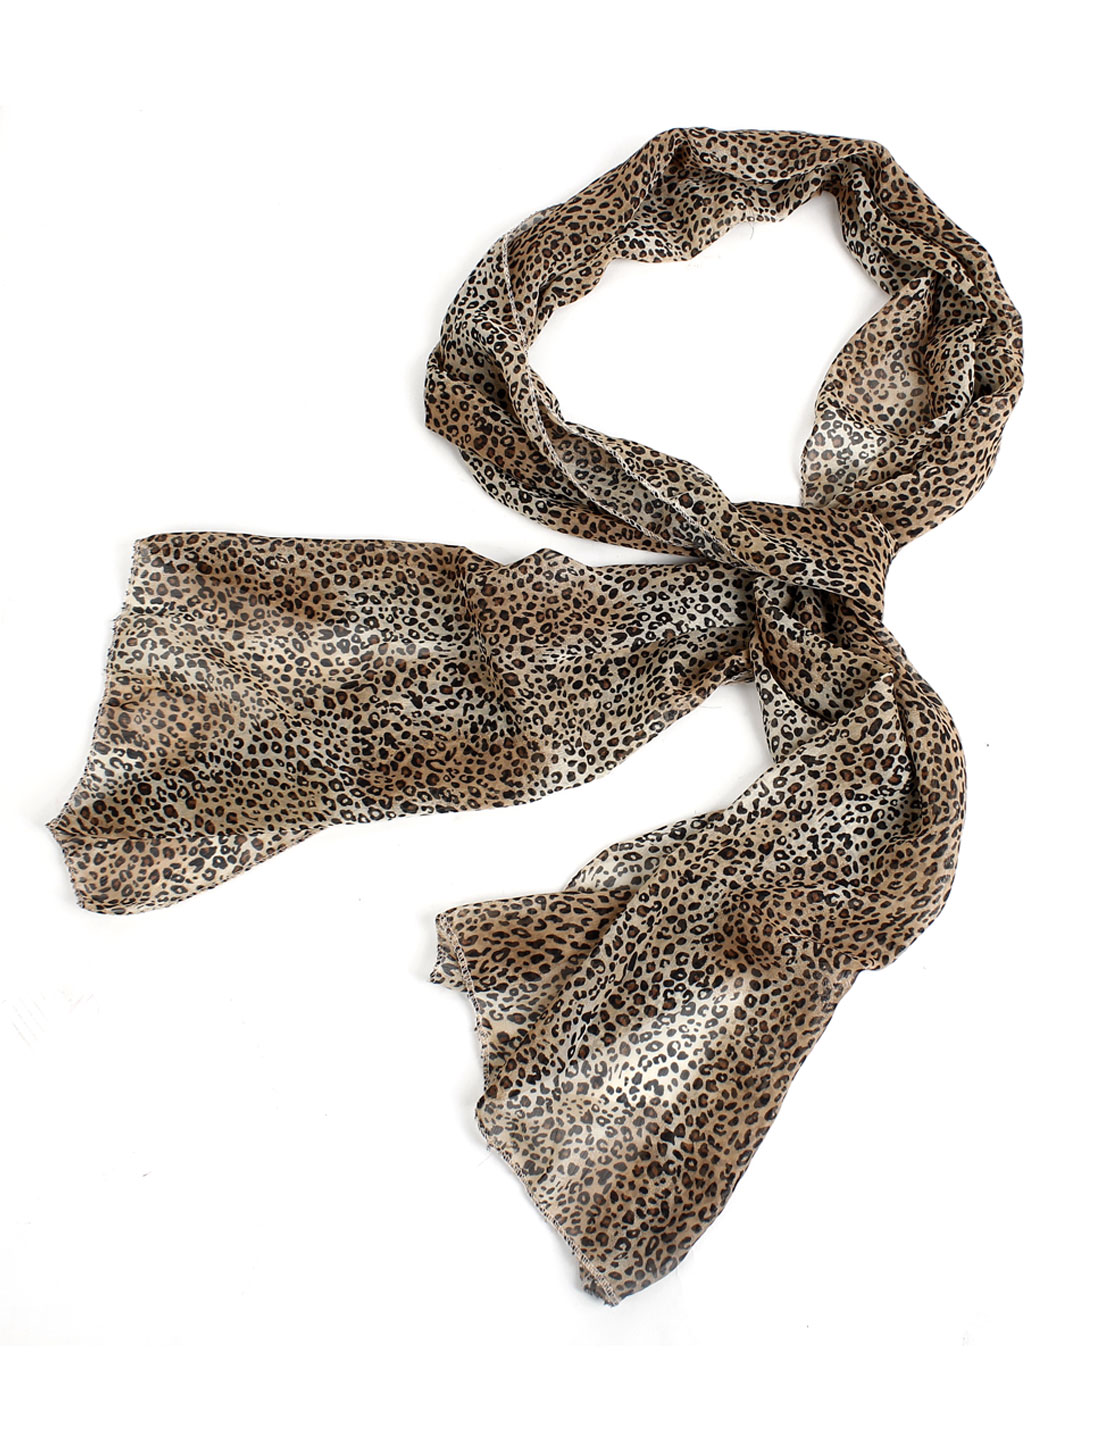 Soft Chiffon Black Brown Leopard Pattern Long Scarf Shawl